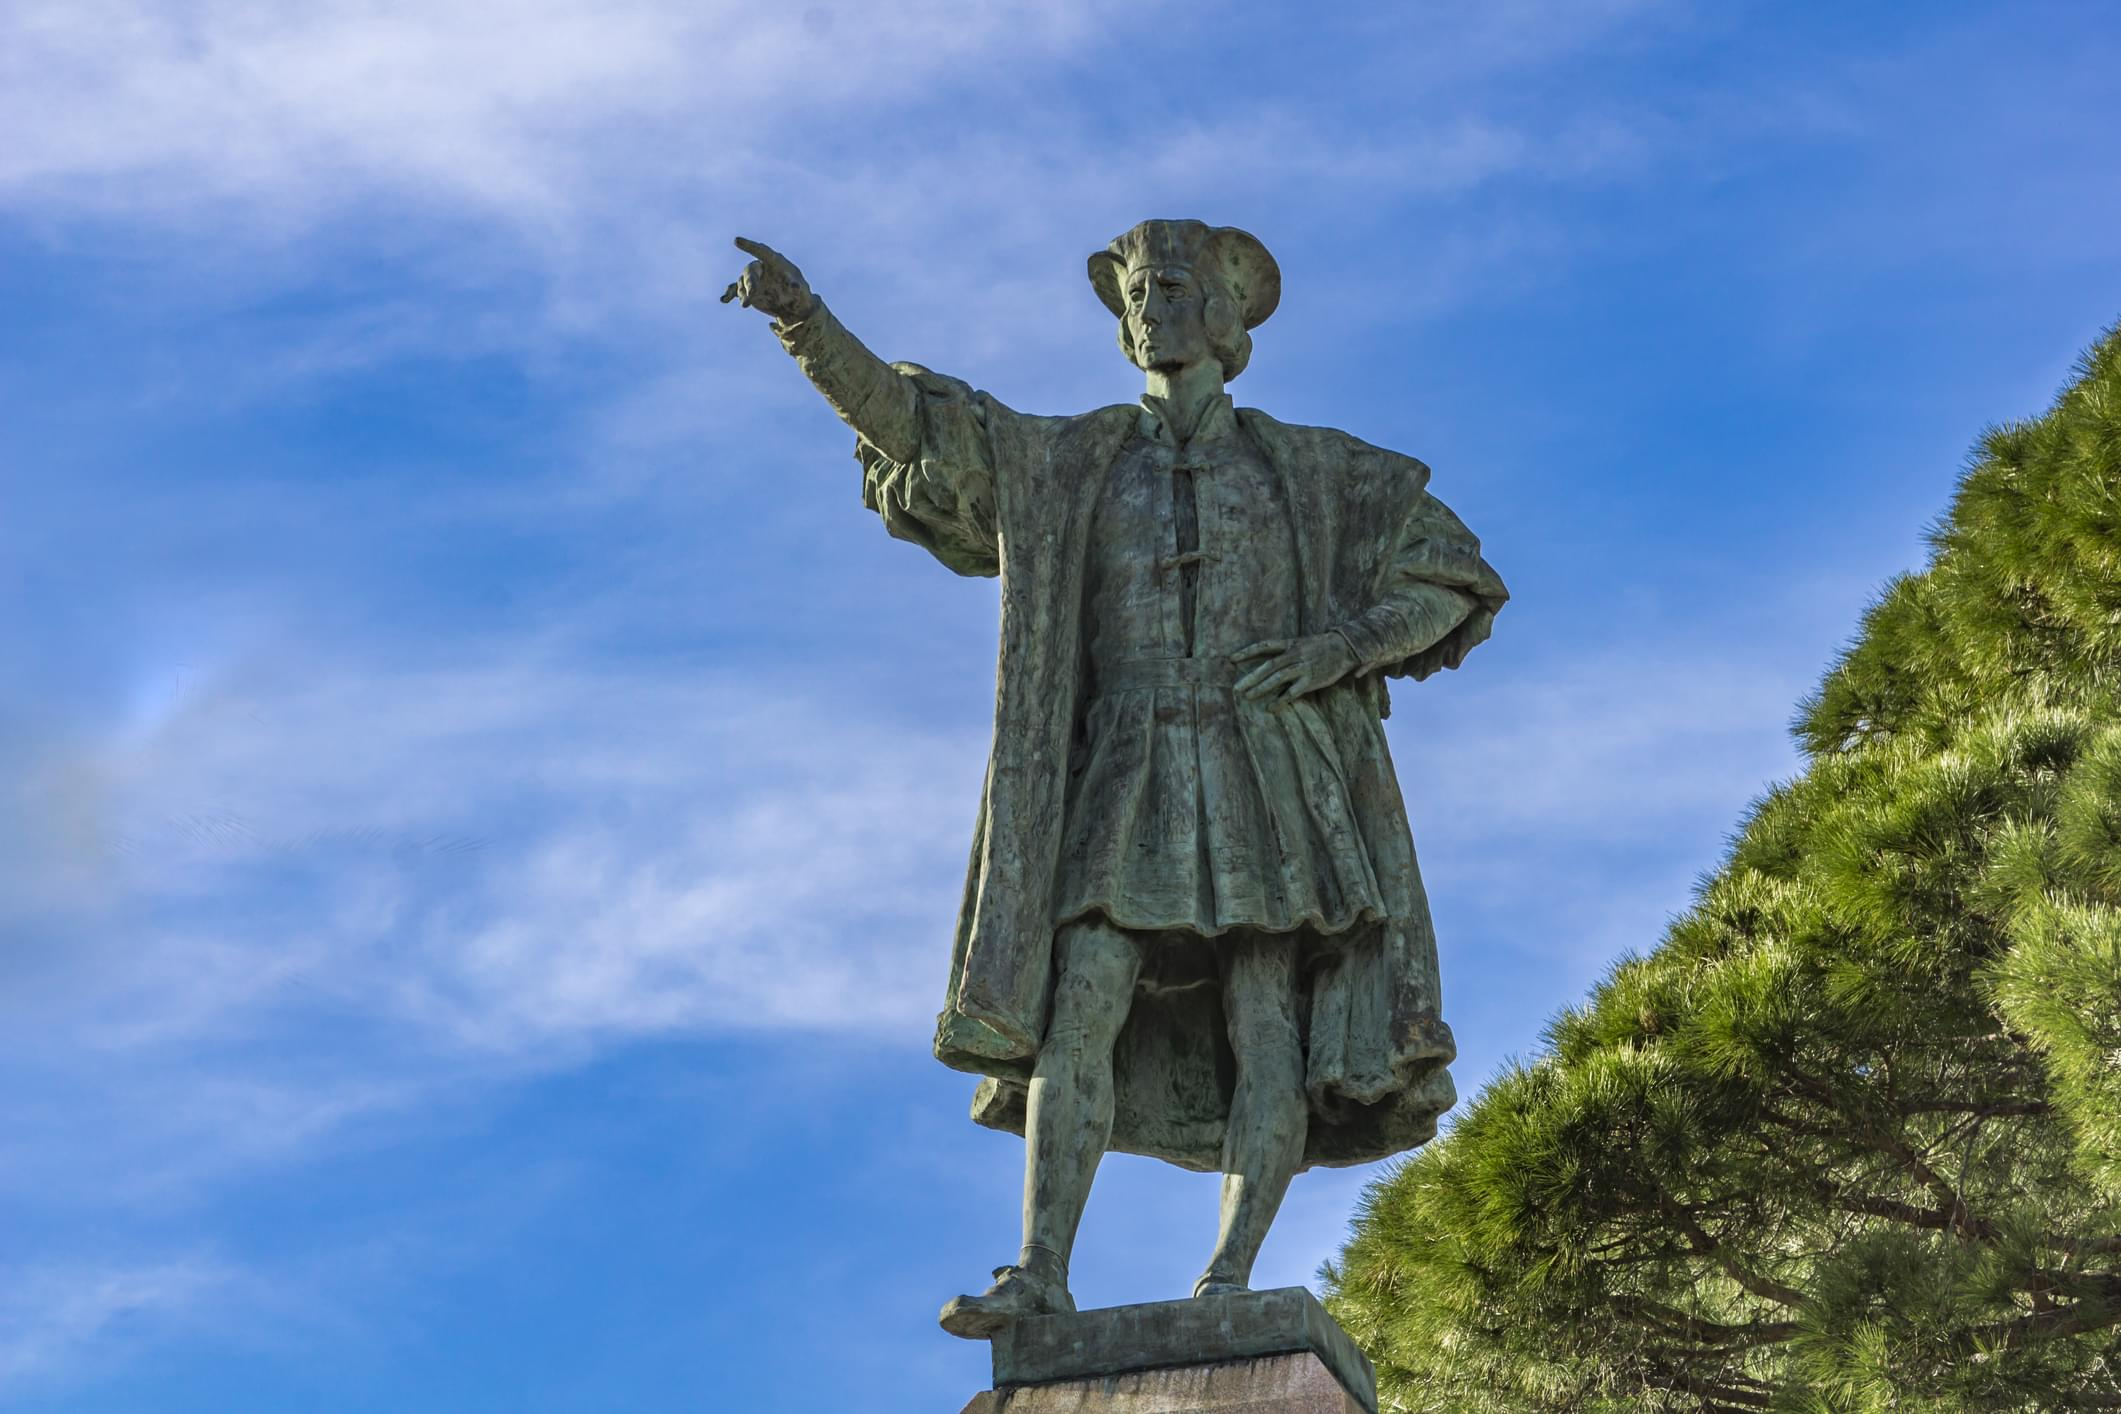 Monument to Christopher Columbus in Rapallo, Italy